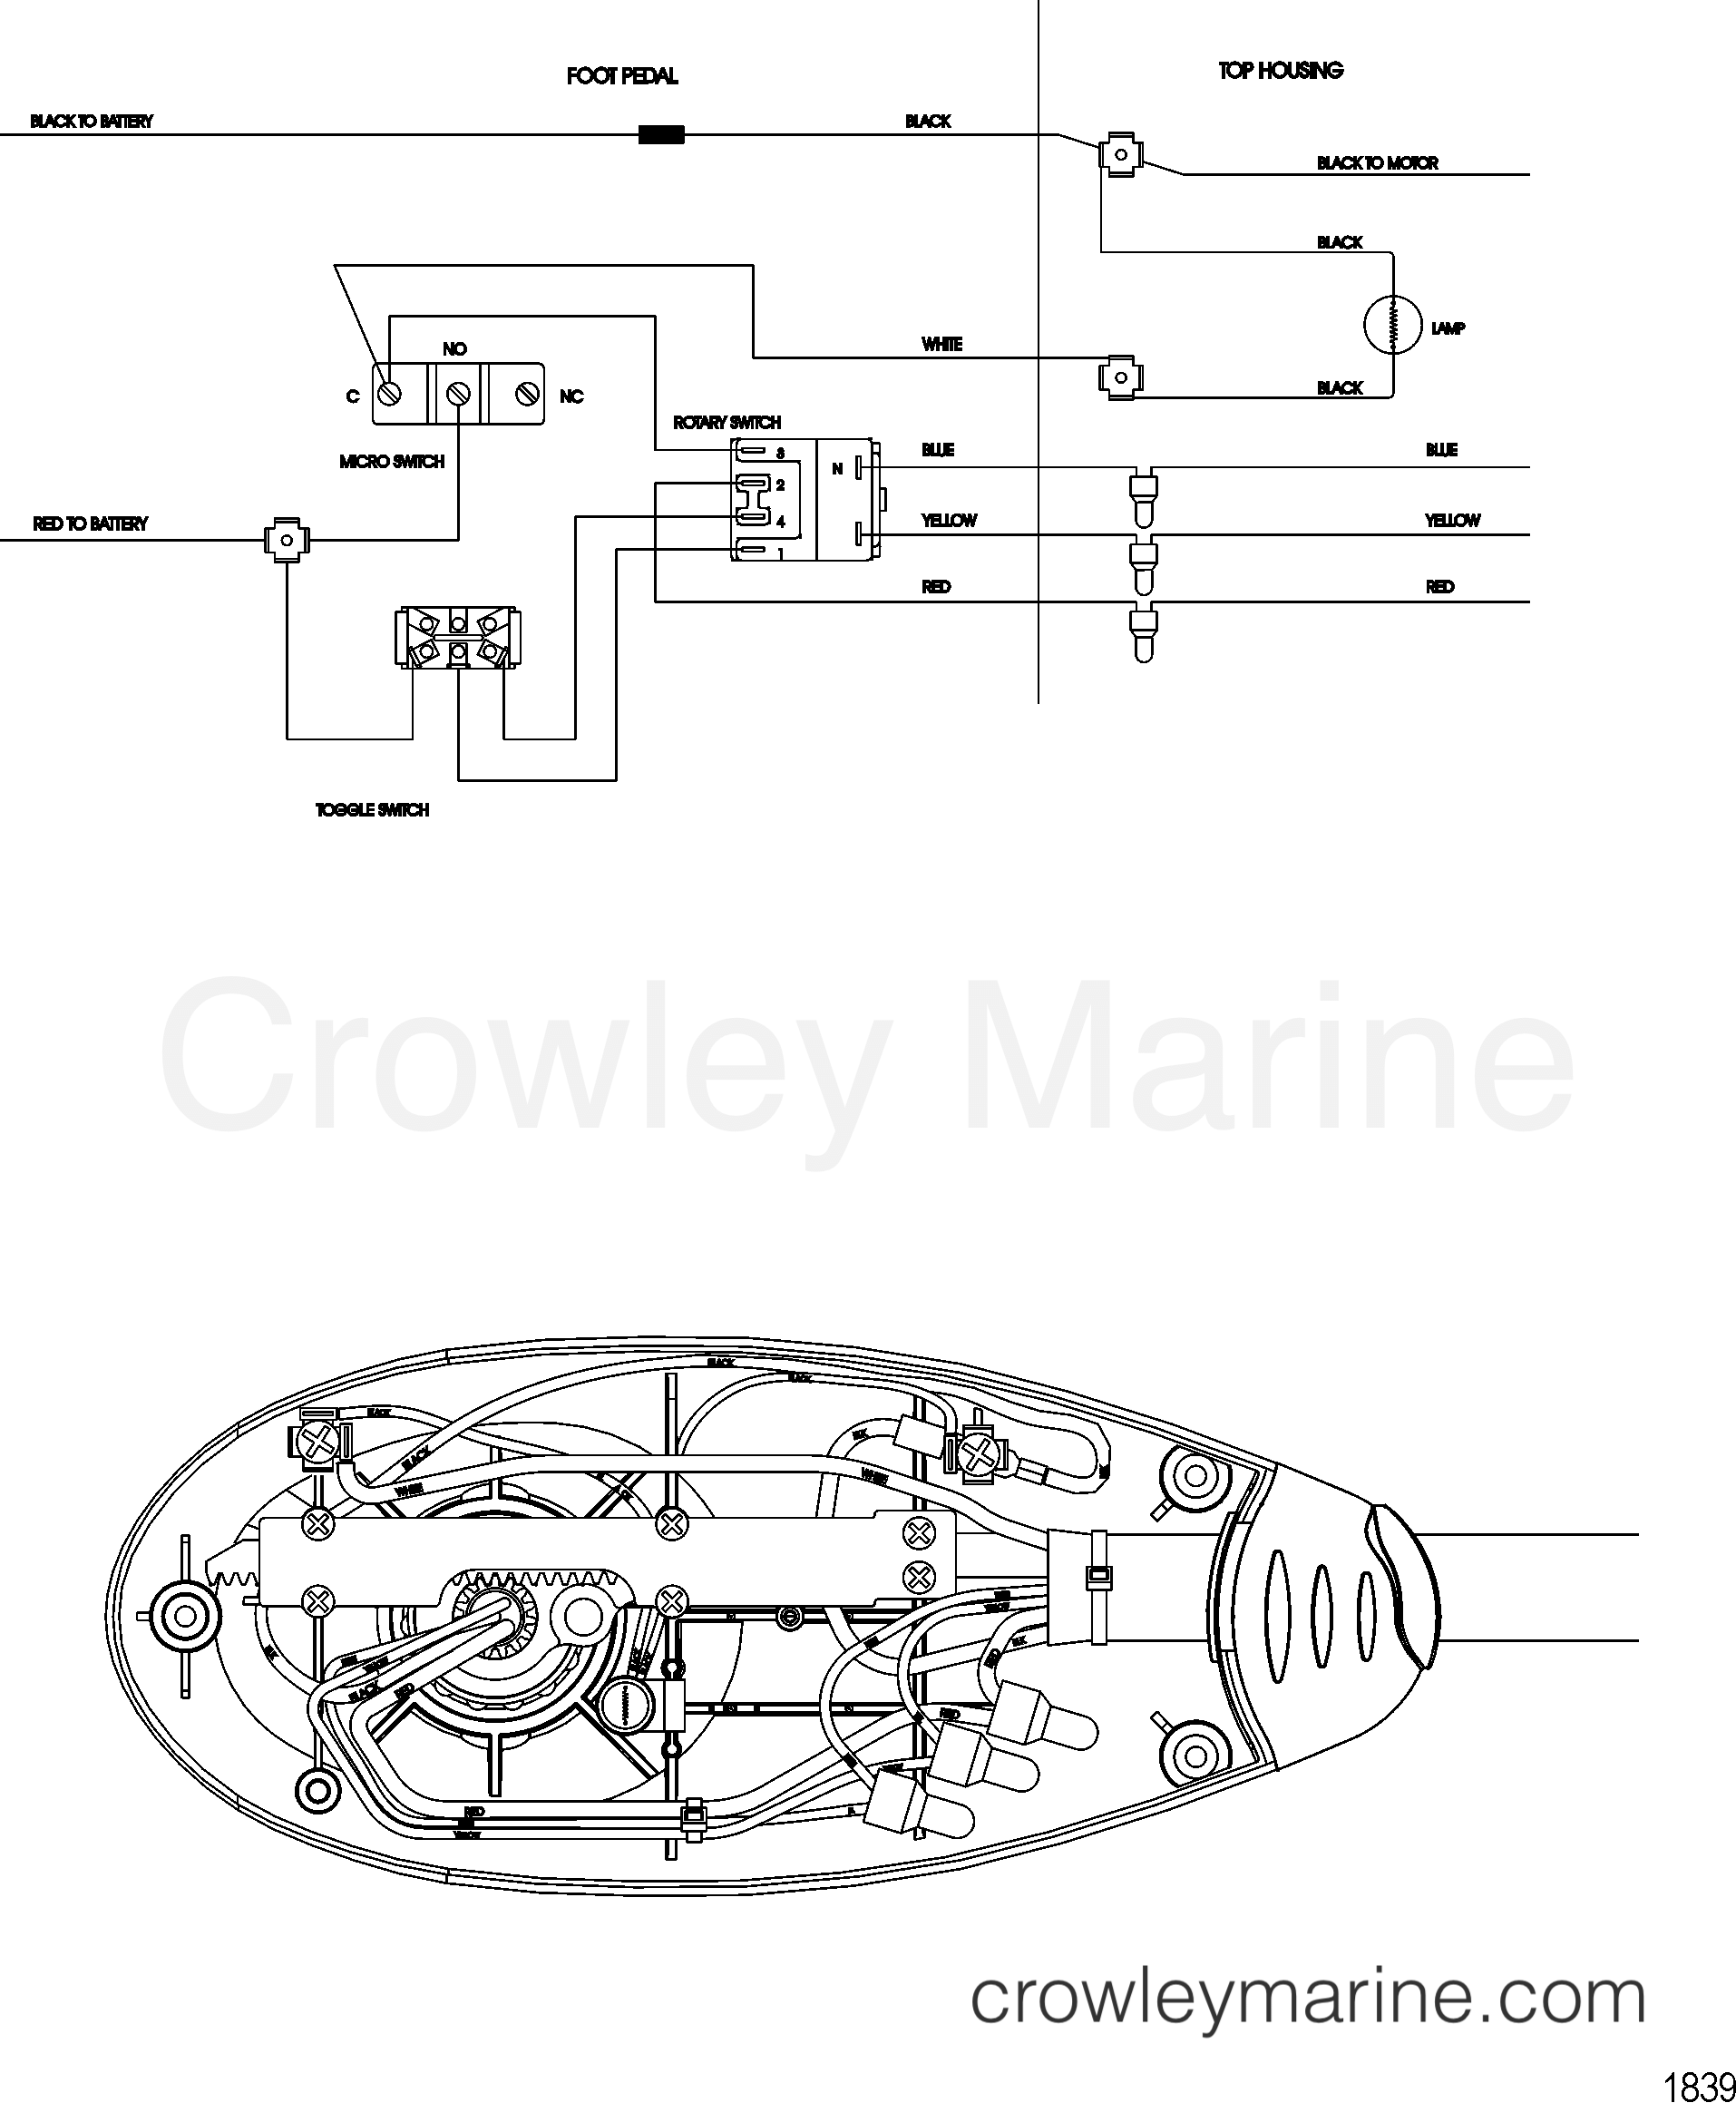 2008 MotorGuide 24V [MOTORGUIDE] - 92331011R - WIRE DIAGRAM(MODEL FW54FB)